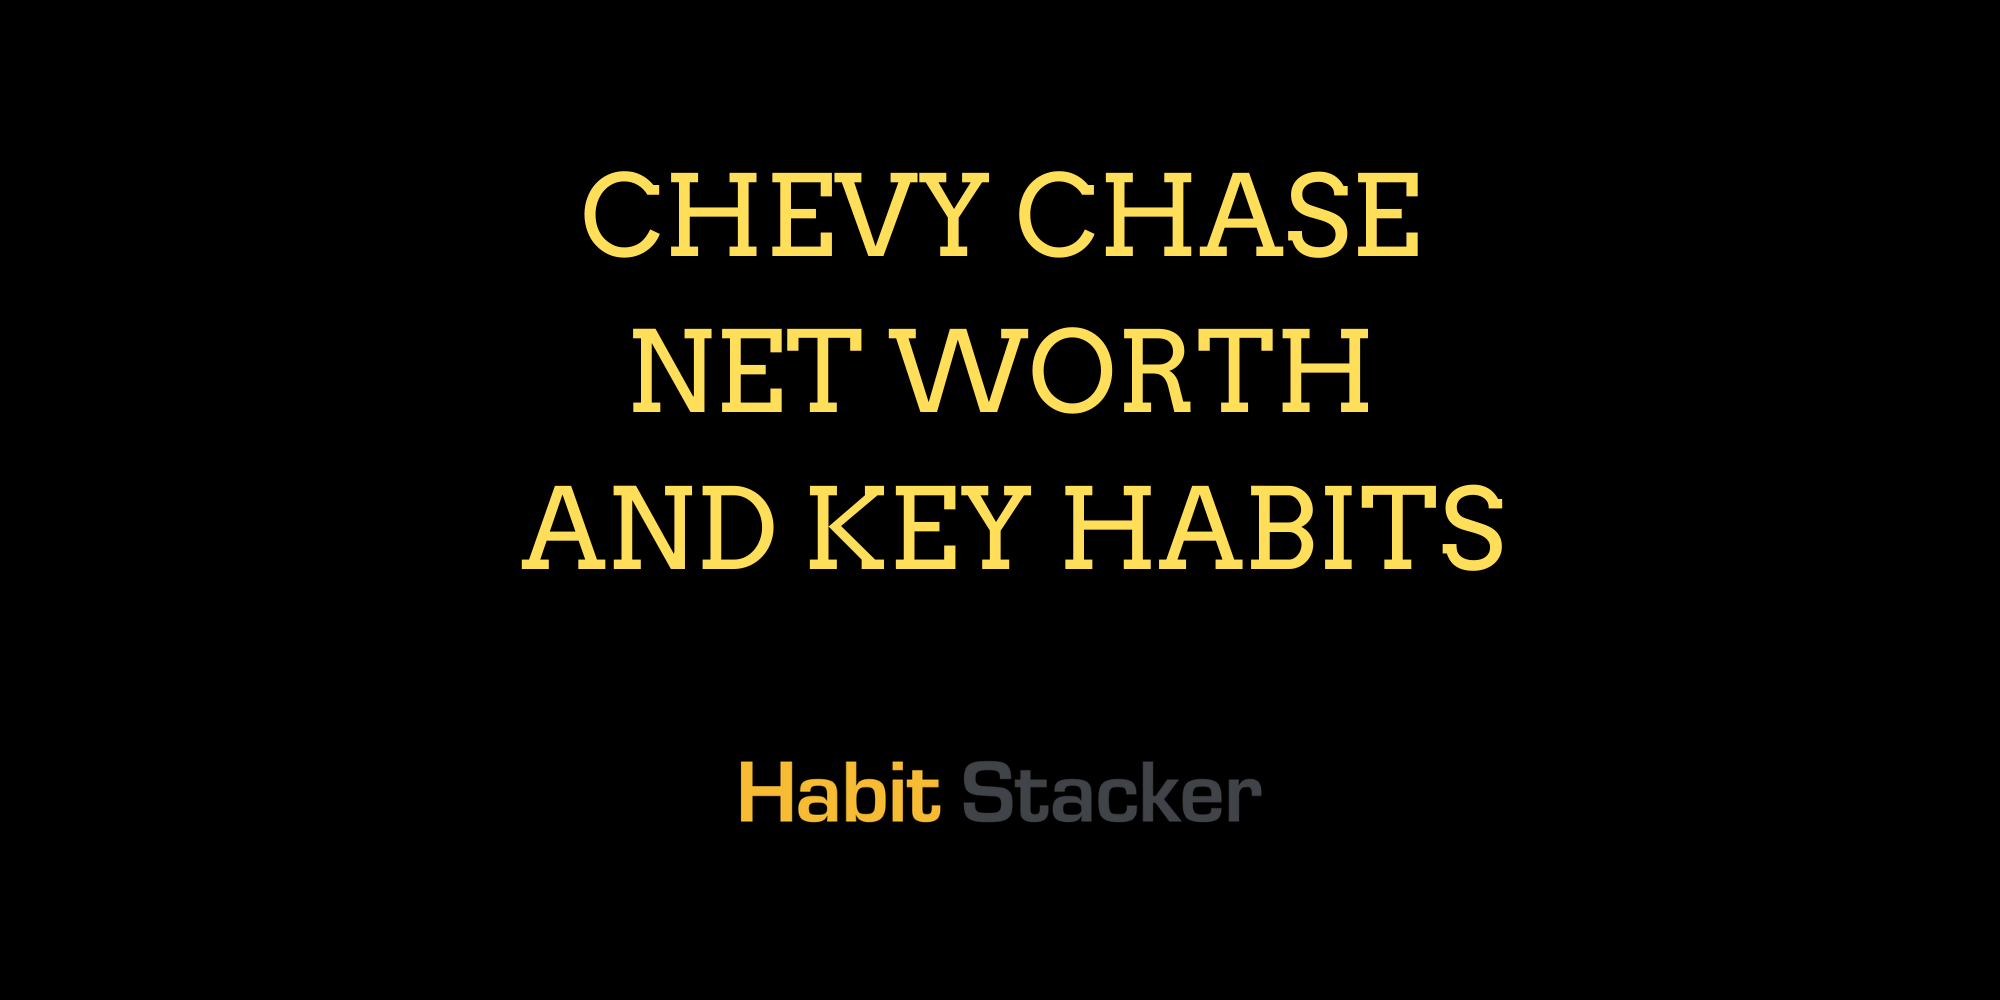 Chevy Chase Net Worth and Key Habits